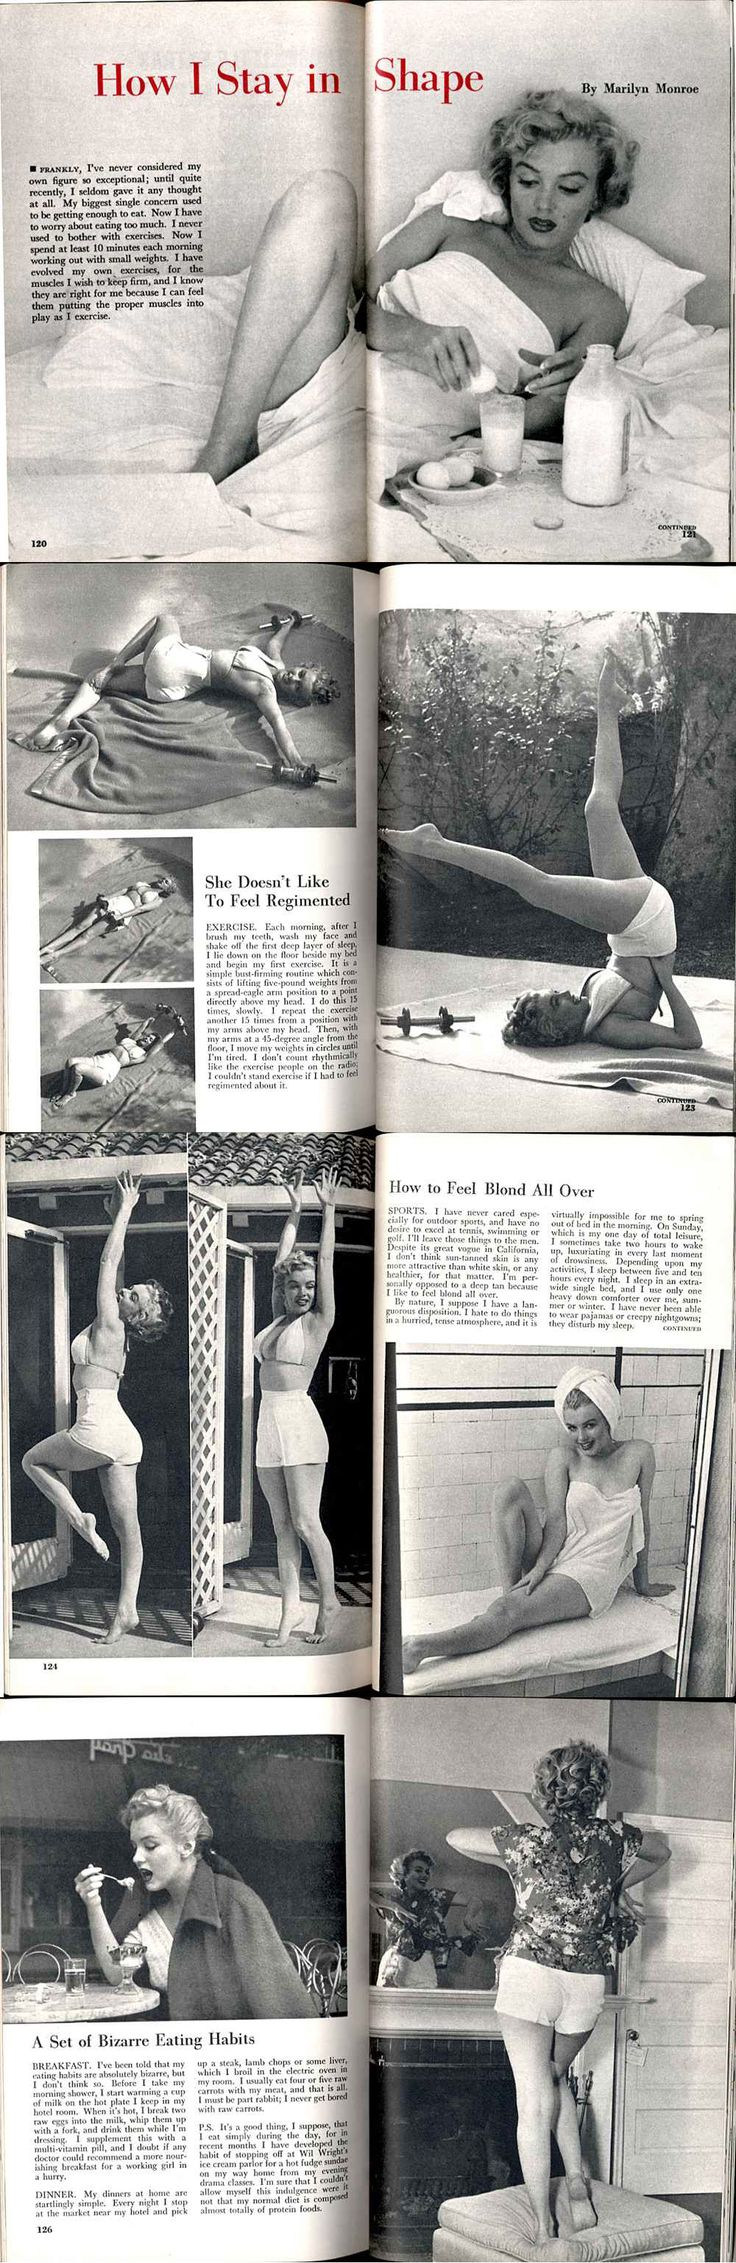 """How I Stay in Shape"" by Marilyn Monroe.... This is an article written by Marilyn herself for the September 1952 issue of ""Pageant"" magazine. These images can be found at http://glamournet.com/legends/Marilyn/monthly/shape1.html"